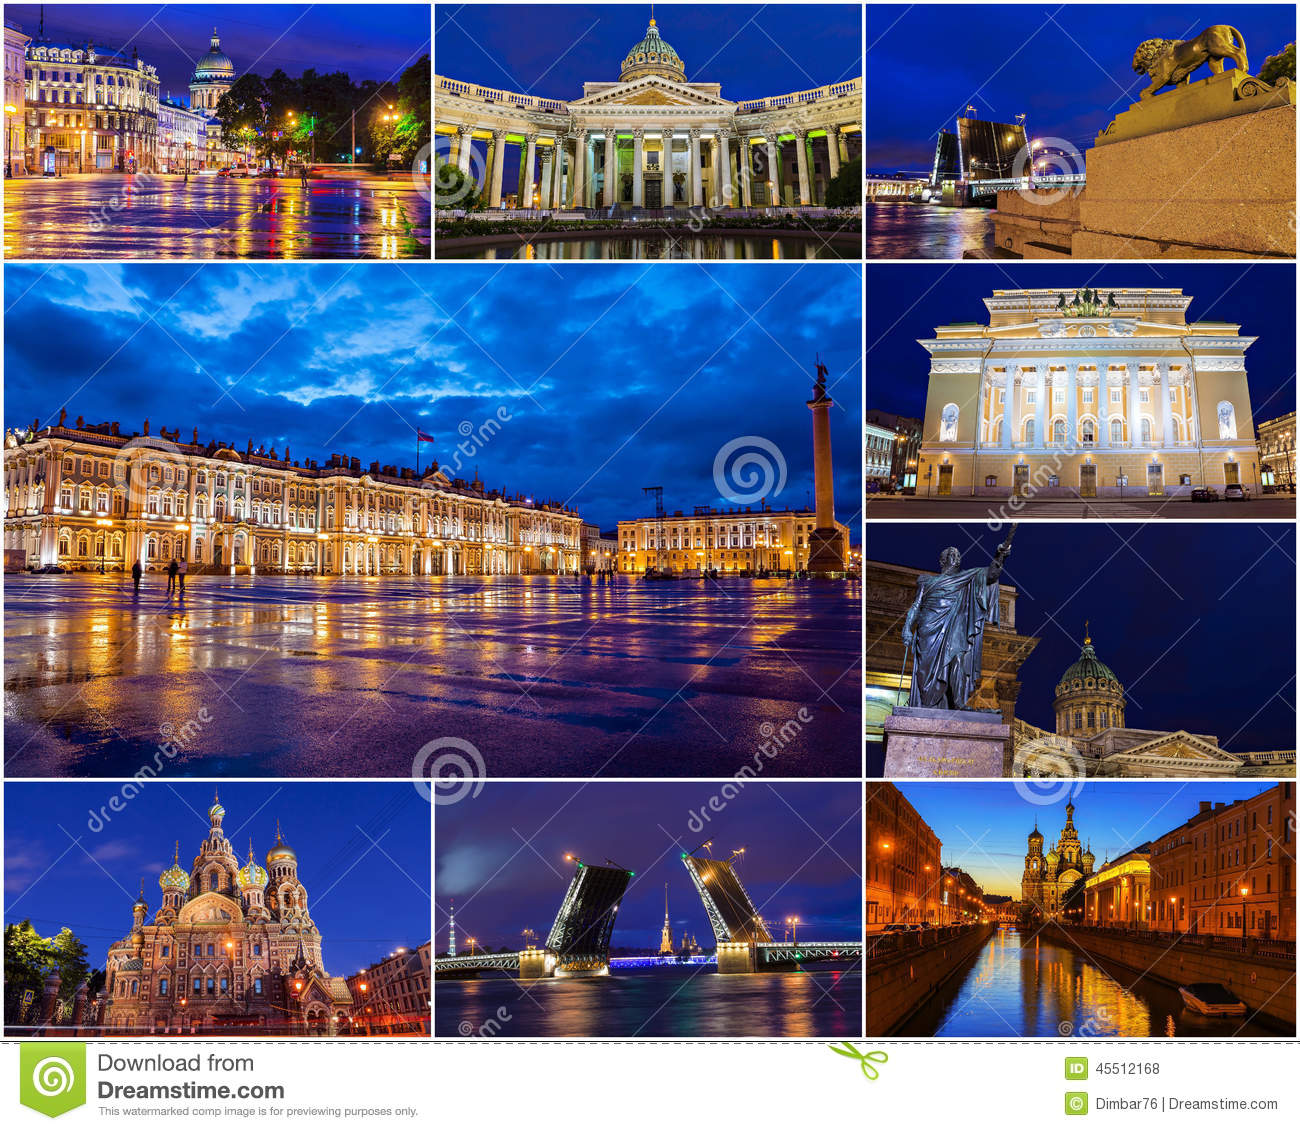 Historical Attractions Of St Petersburg Russia Collage